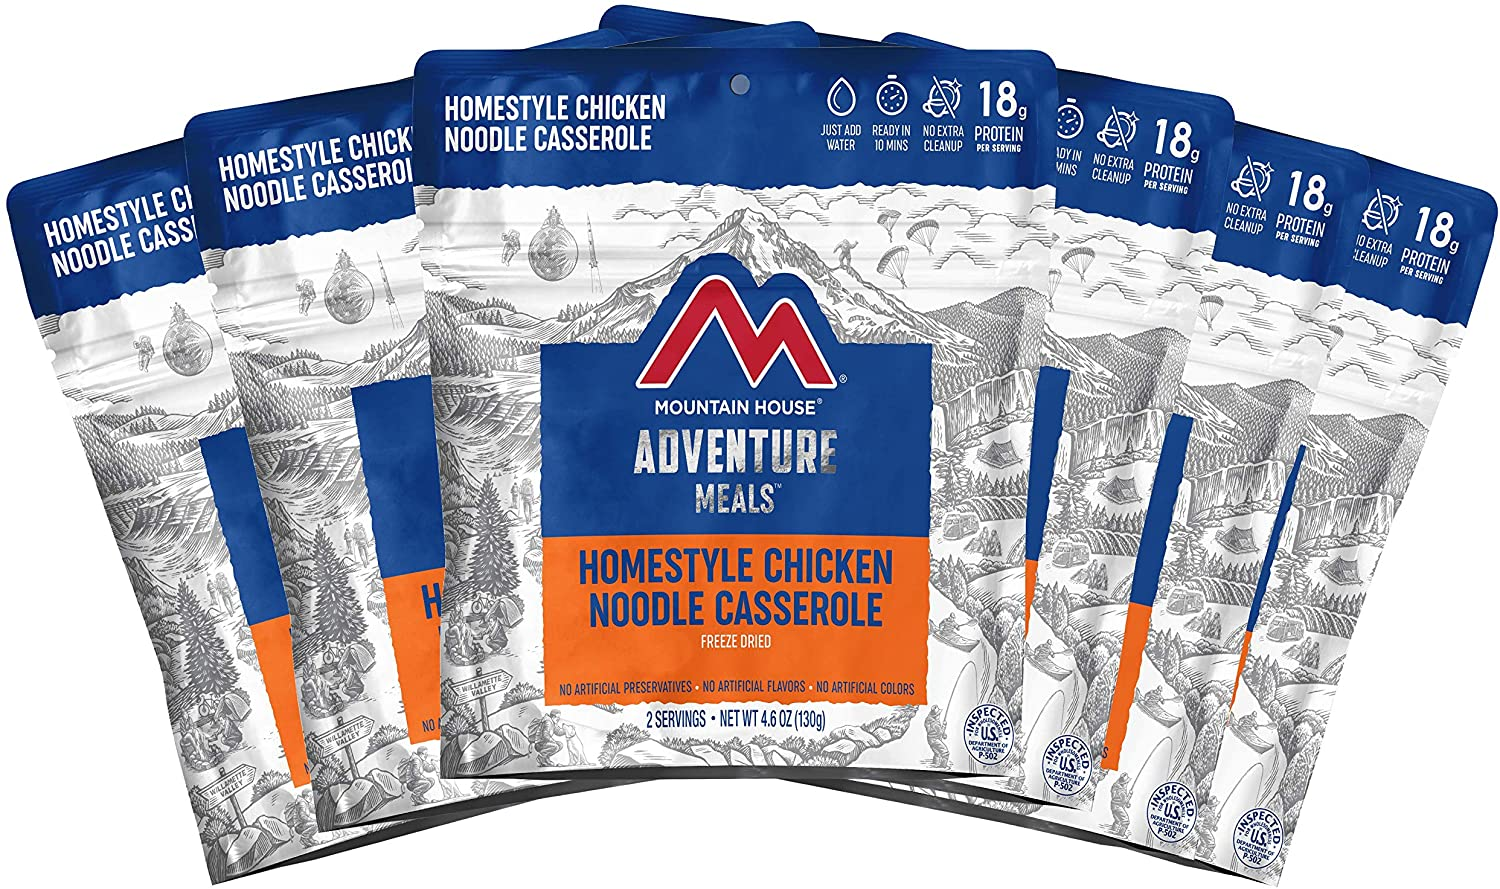 Mountain House Homestyle Chicken Noodle Casserole   Freeze Dried Backpacking & Camping Food   Survival & Emergency Food